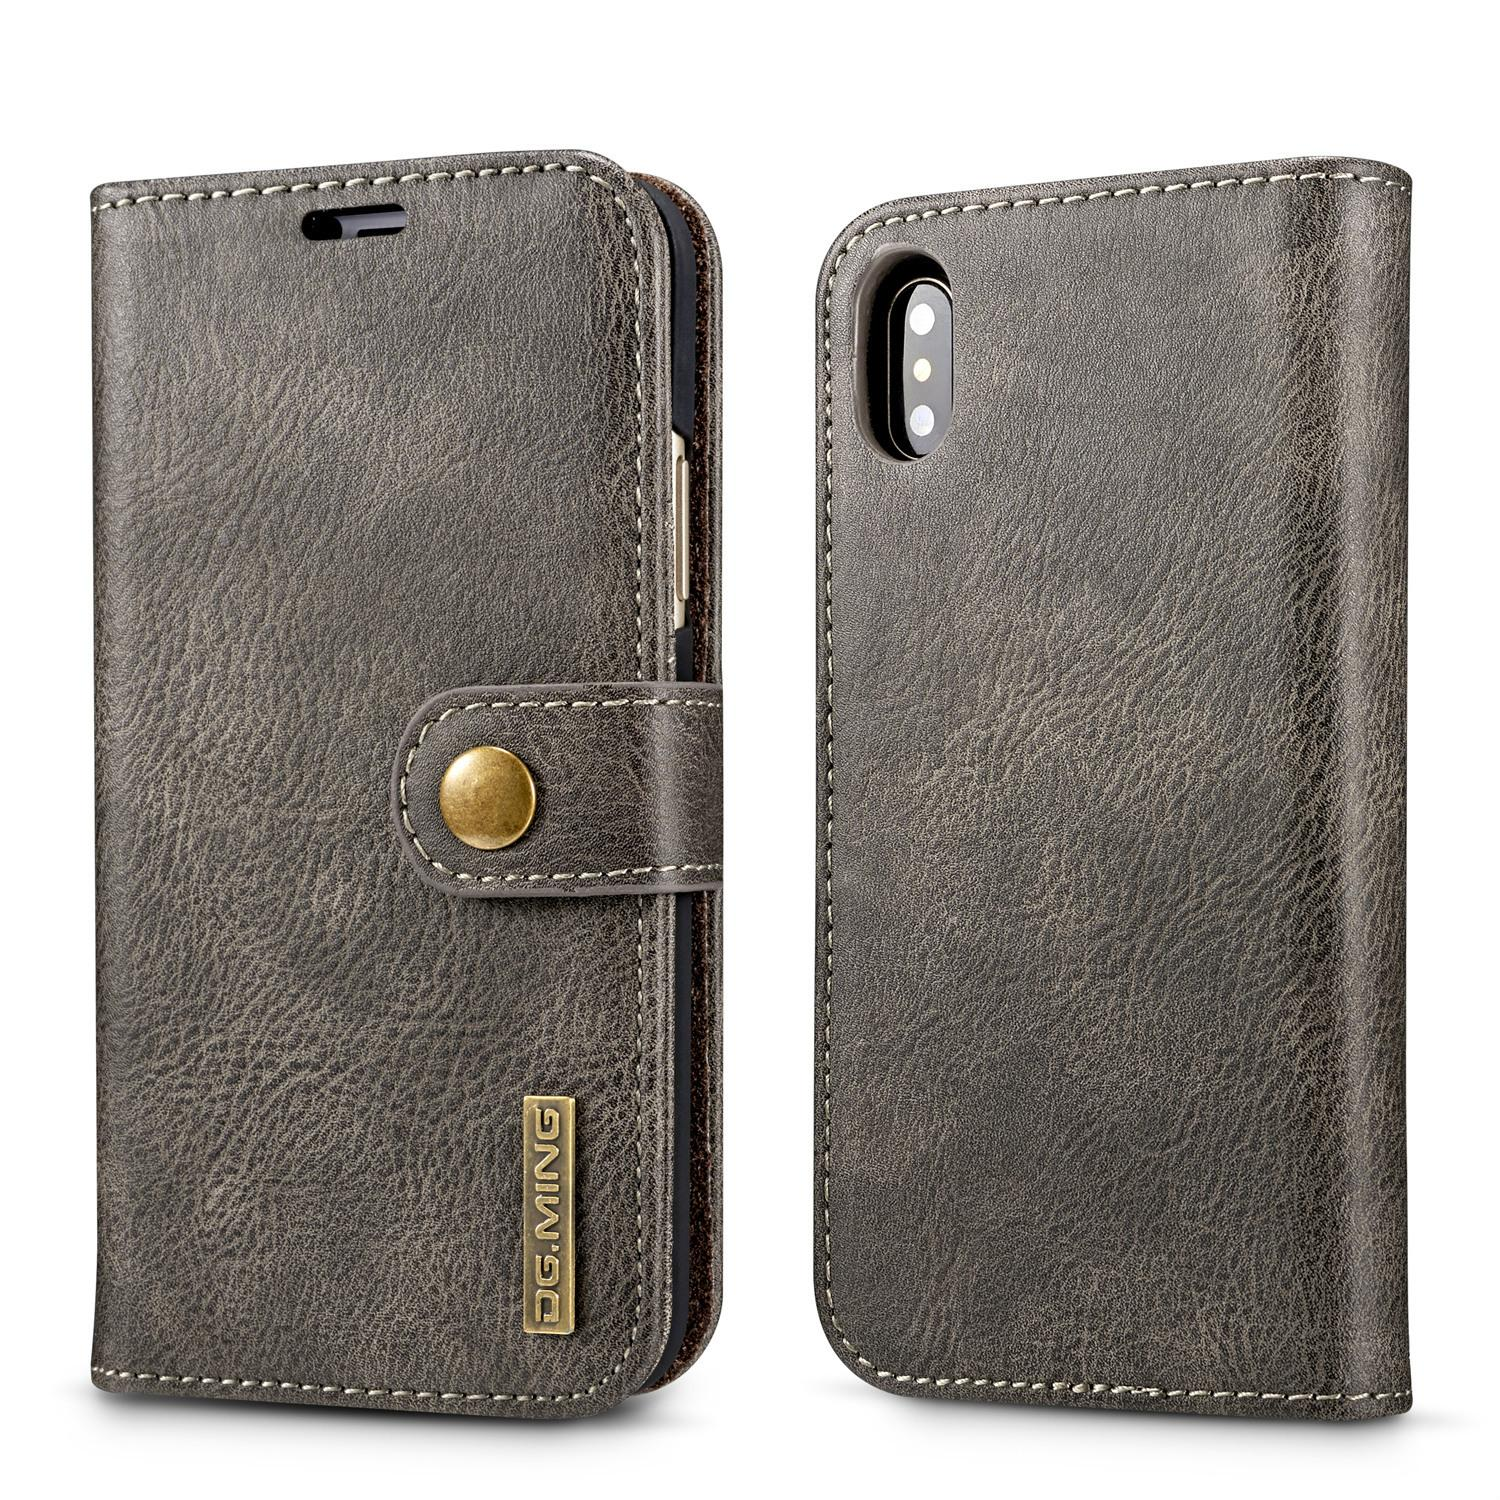 For iphone X/8 7/Plus/6 6S/5 SE/Galaxy S9/Note 8/S8 2in1 Leather Wallet Magnetic Removable Detachable Hard Case Flip Cover Slot Metal button